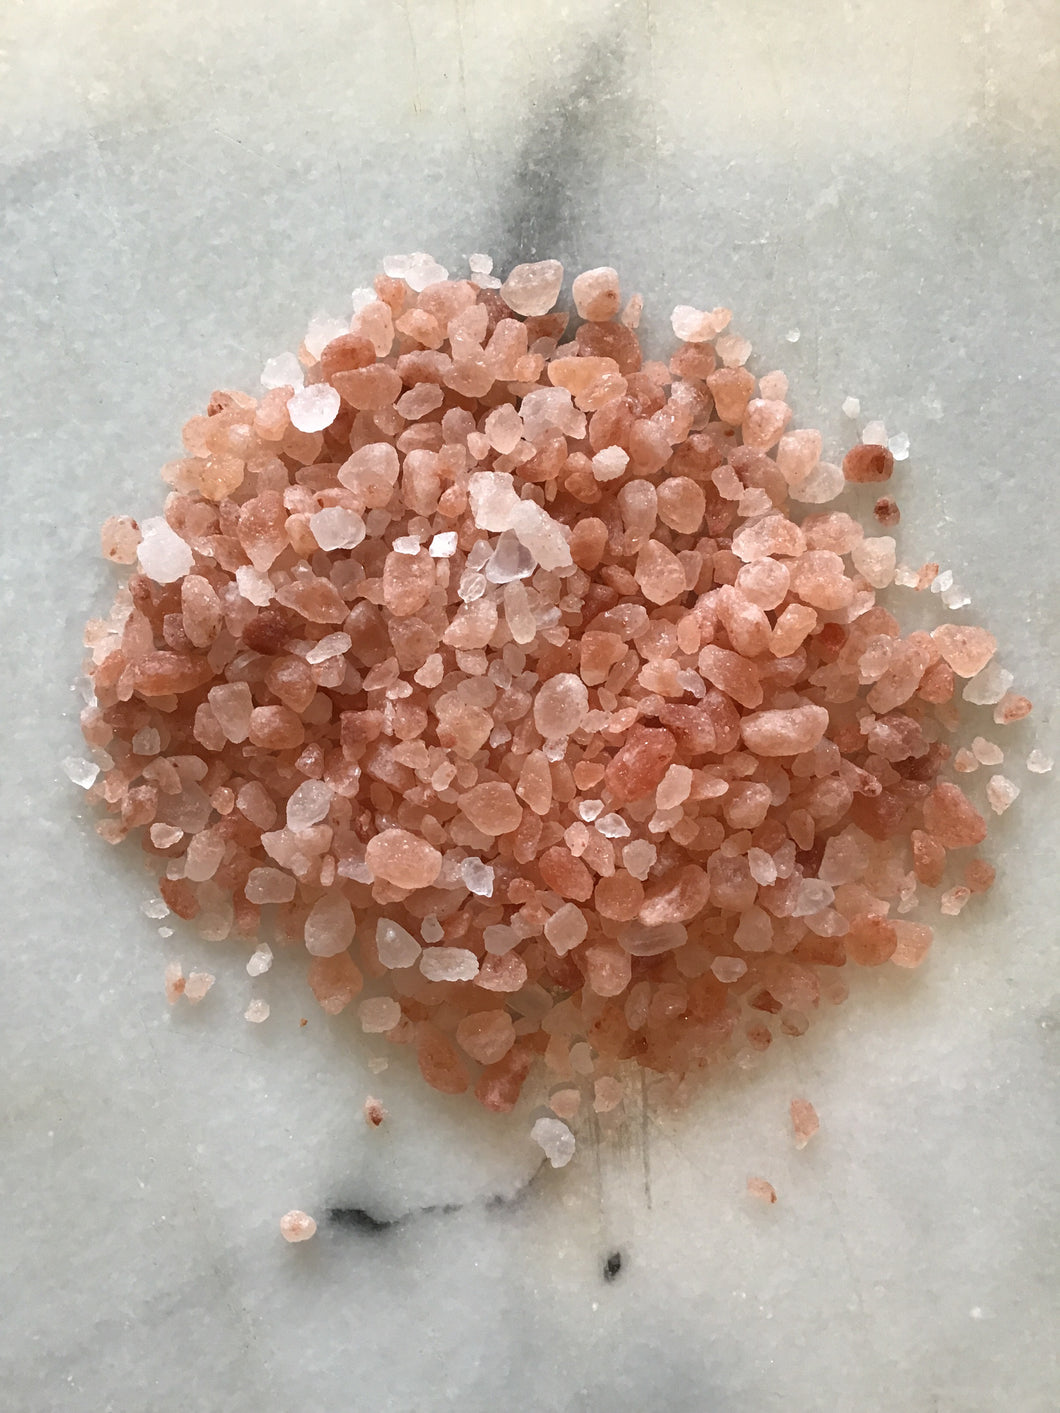 Coarse Himalayan Salt